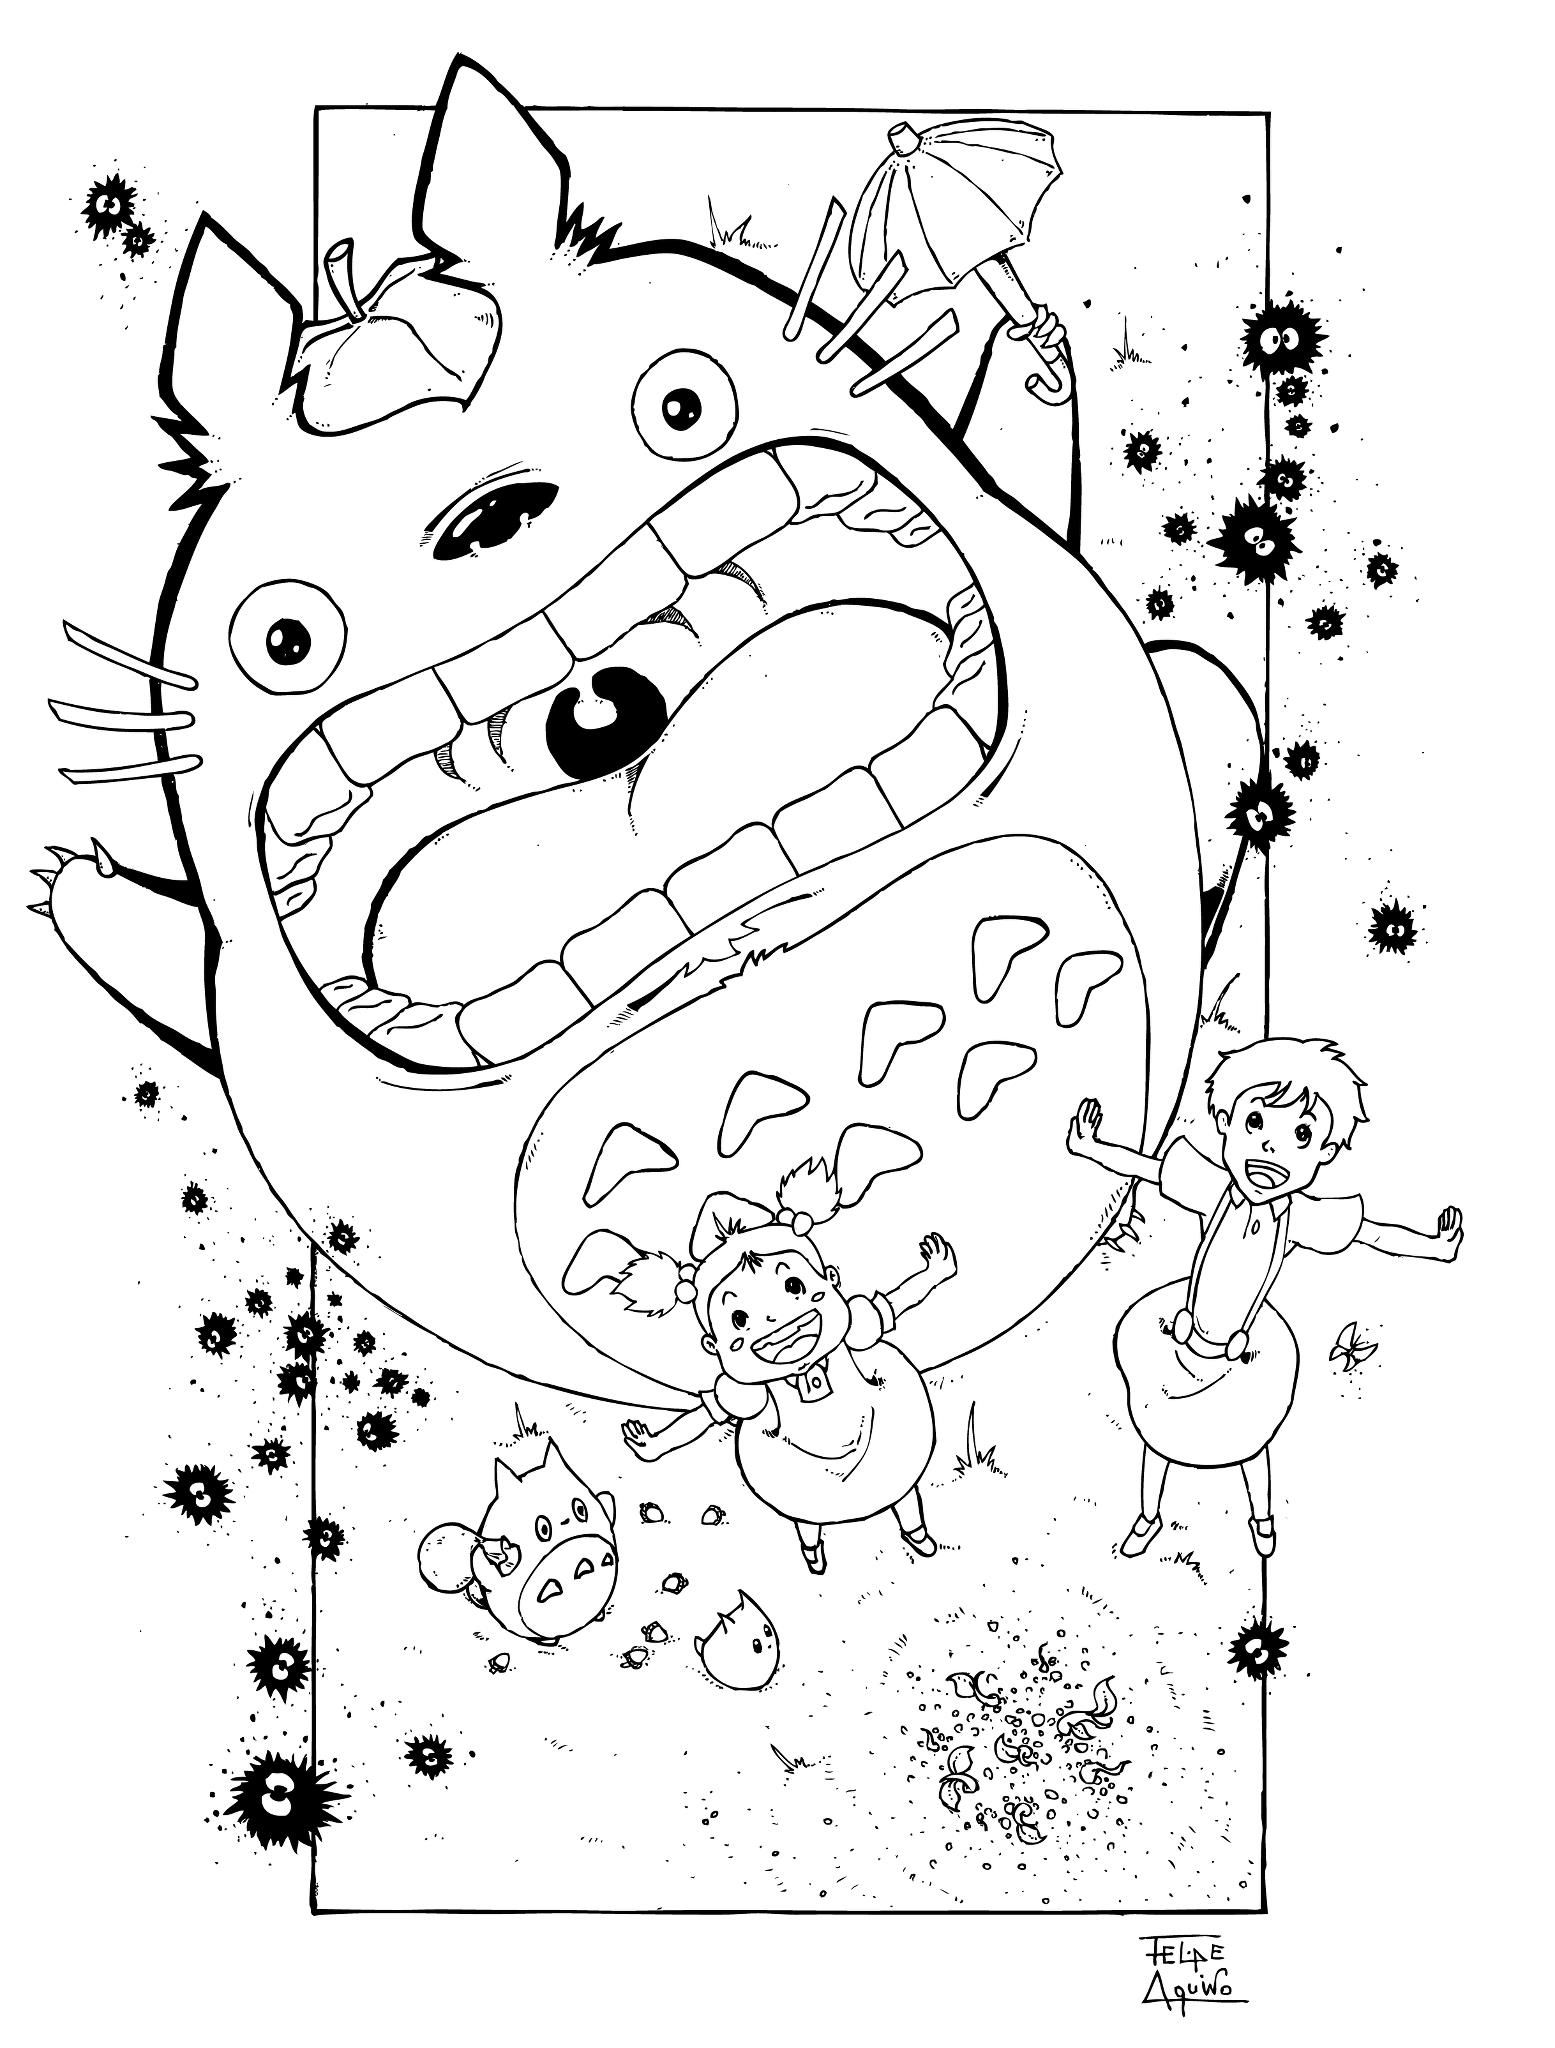 hayao miyazaki coloring pages - Hľadať v Google | Coloring Pages ...